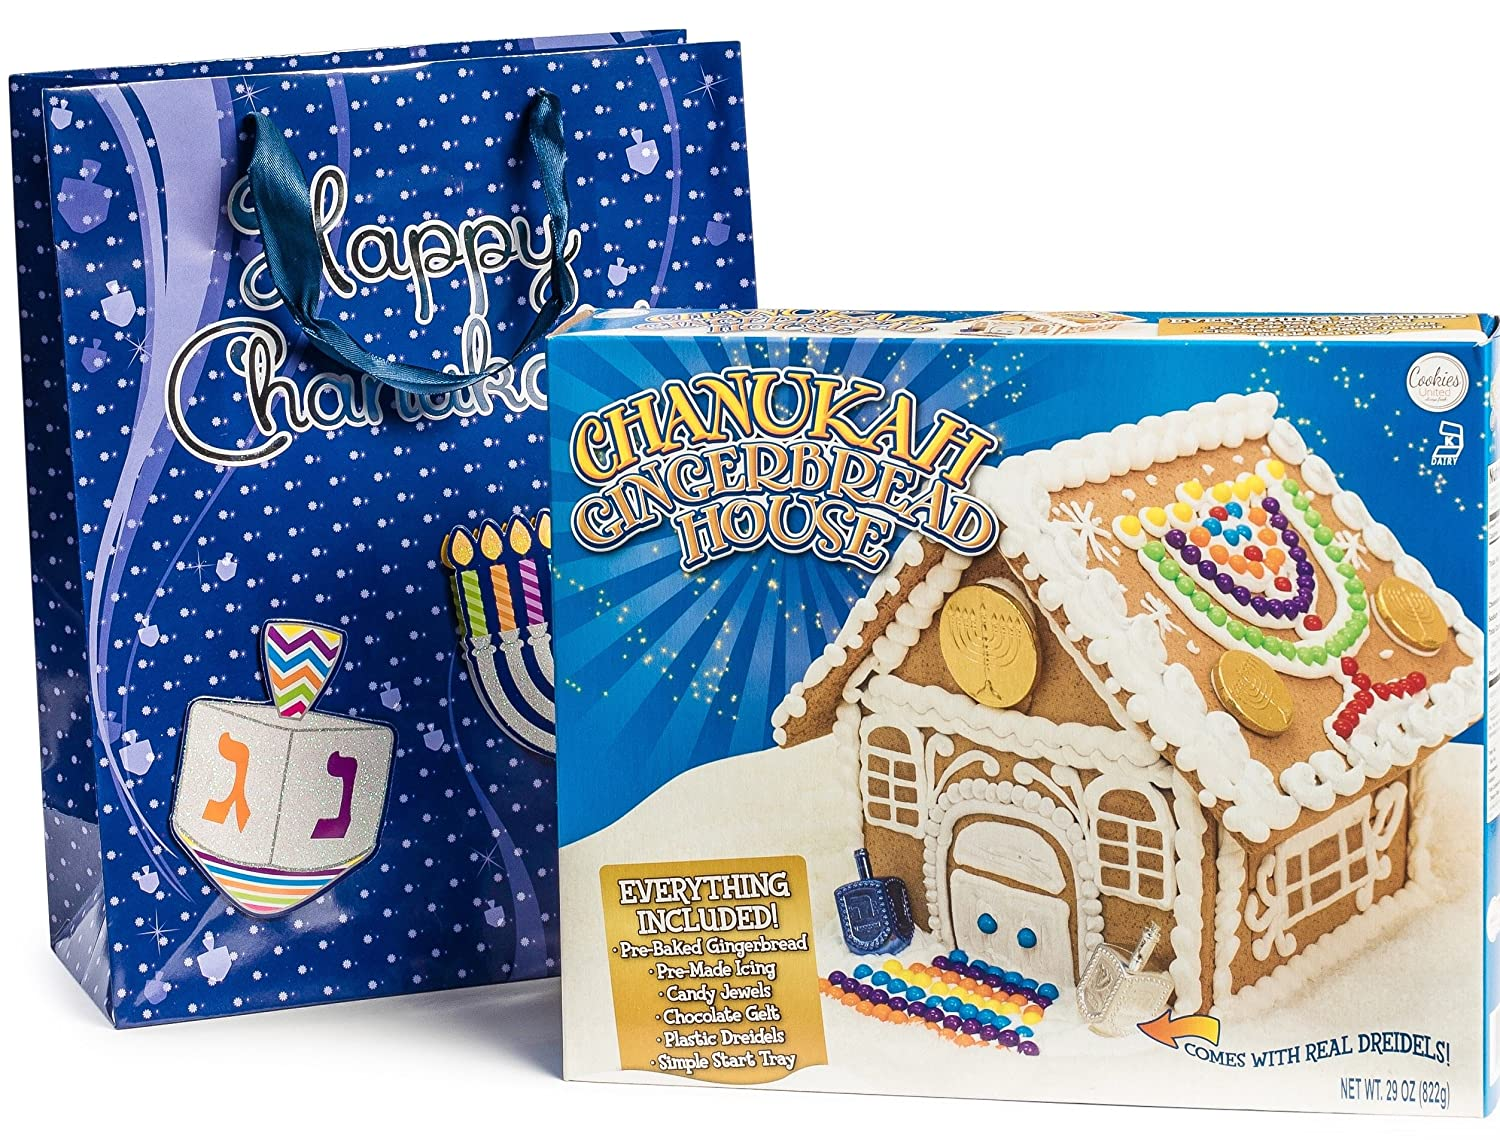 SALE! Happy Hanukkah Gourmet Chanukah Gingerbread House Kit for Kids and Entire Family, Comes Packaged in FREE Beautiful Hanukkah BAG!